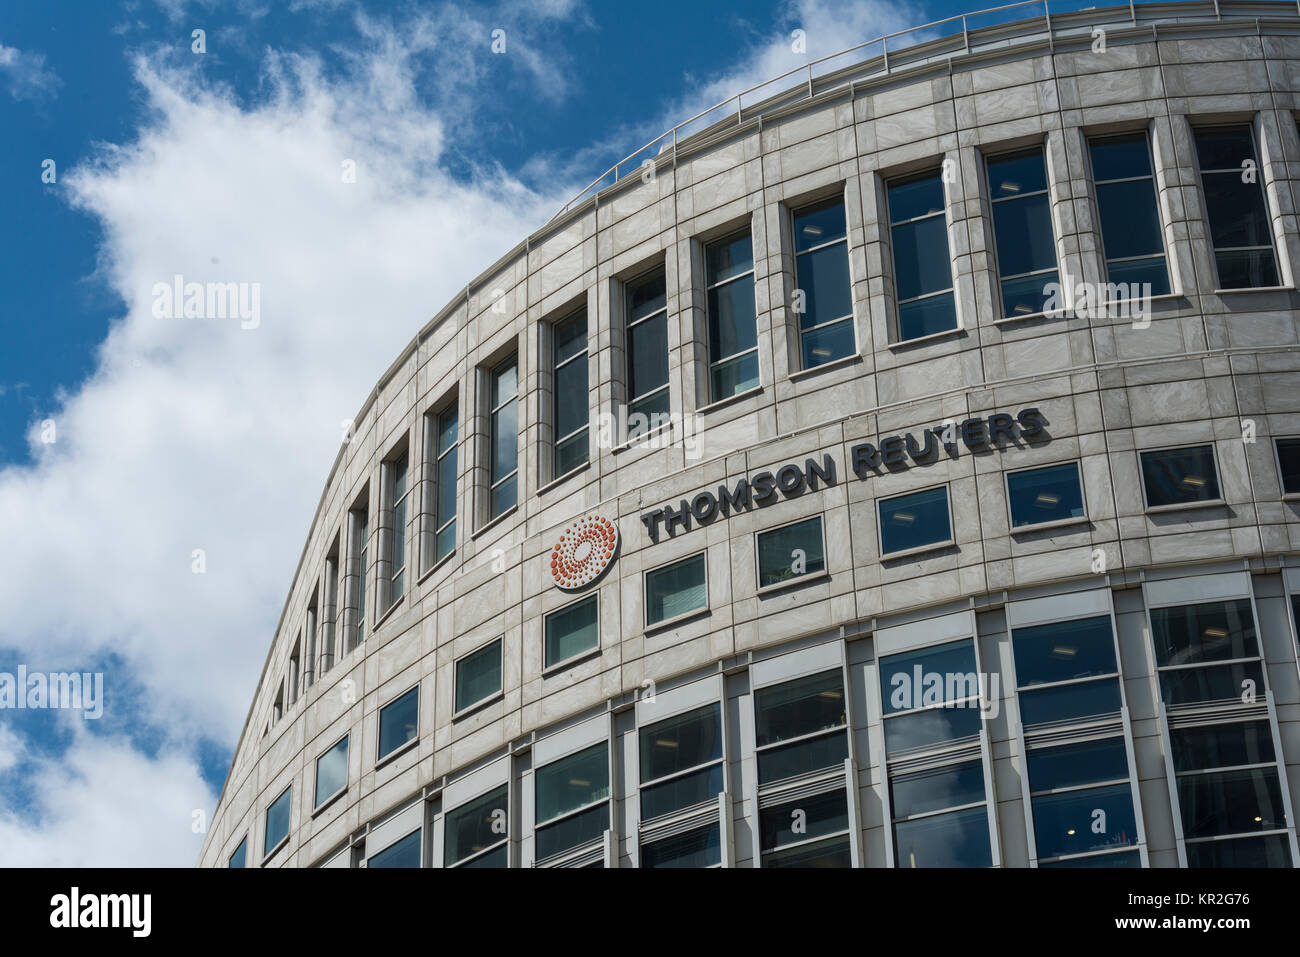 Thomson Reuters Building, One Canada Square, Canary Wharf, London, England, United Kingdom - Stock Image